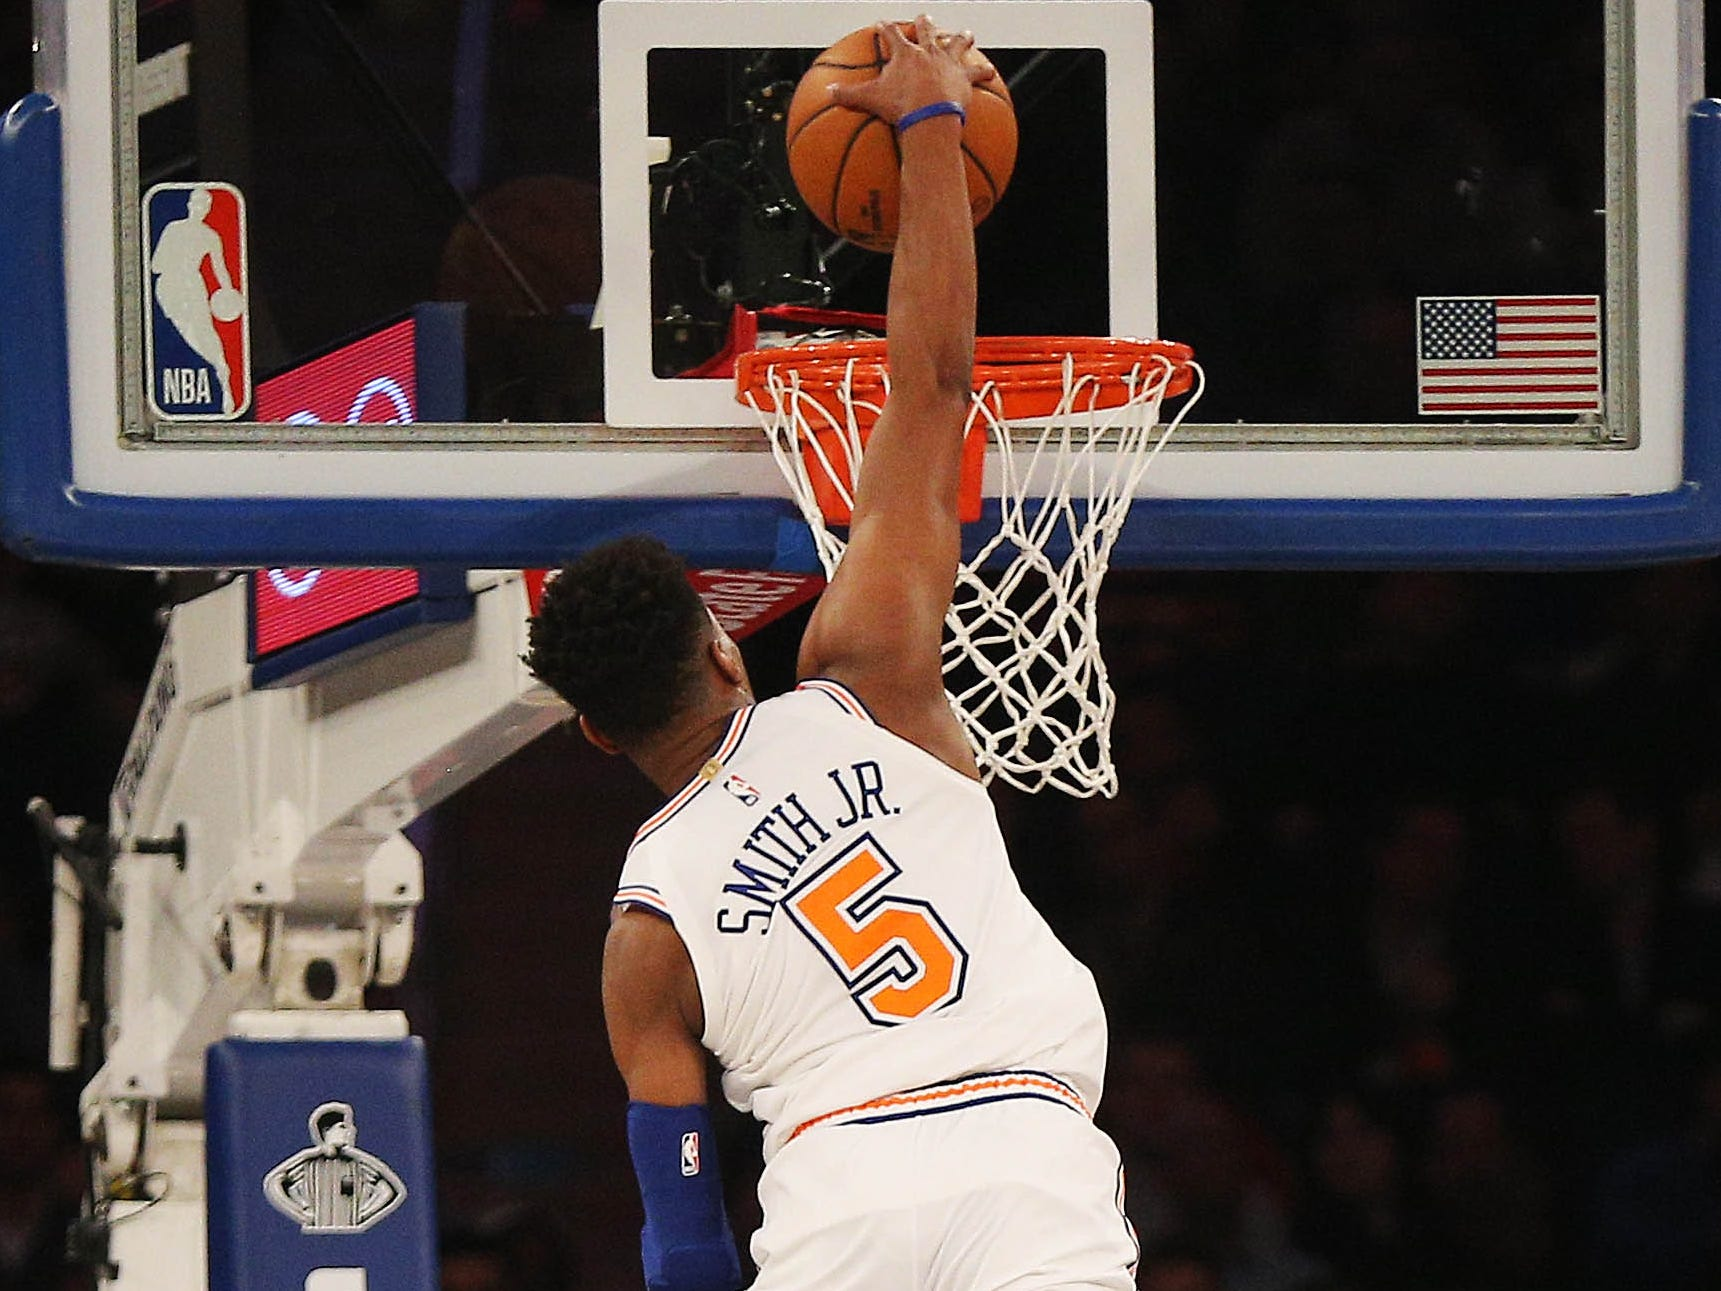 Feb. 22: Knicks guard Dennis Smith Jr. rises up for the thunderous one-handed slam against the T'wolves.